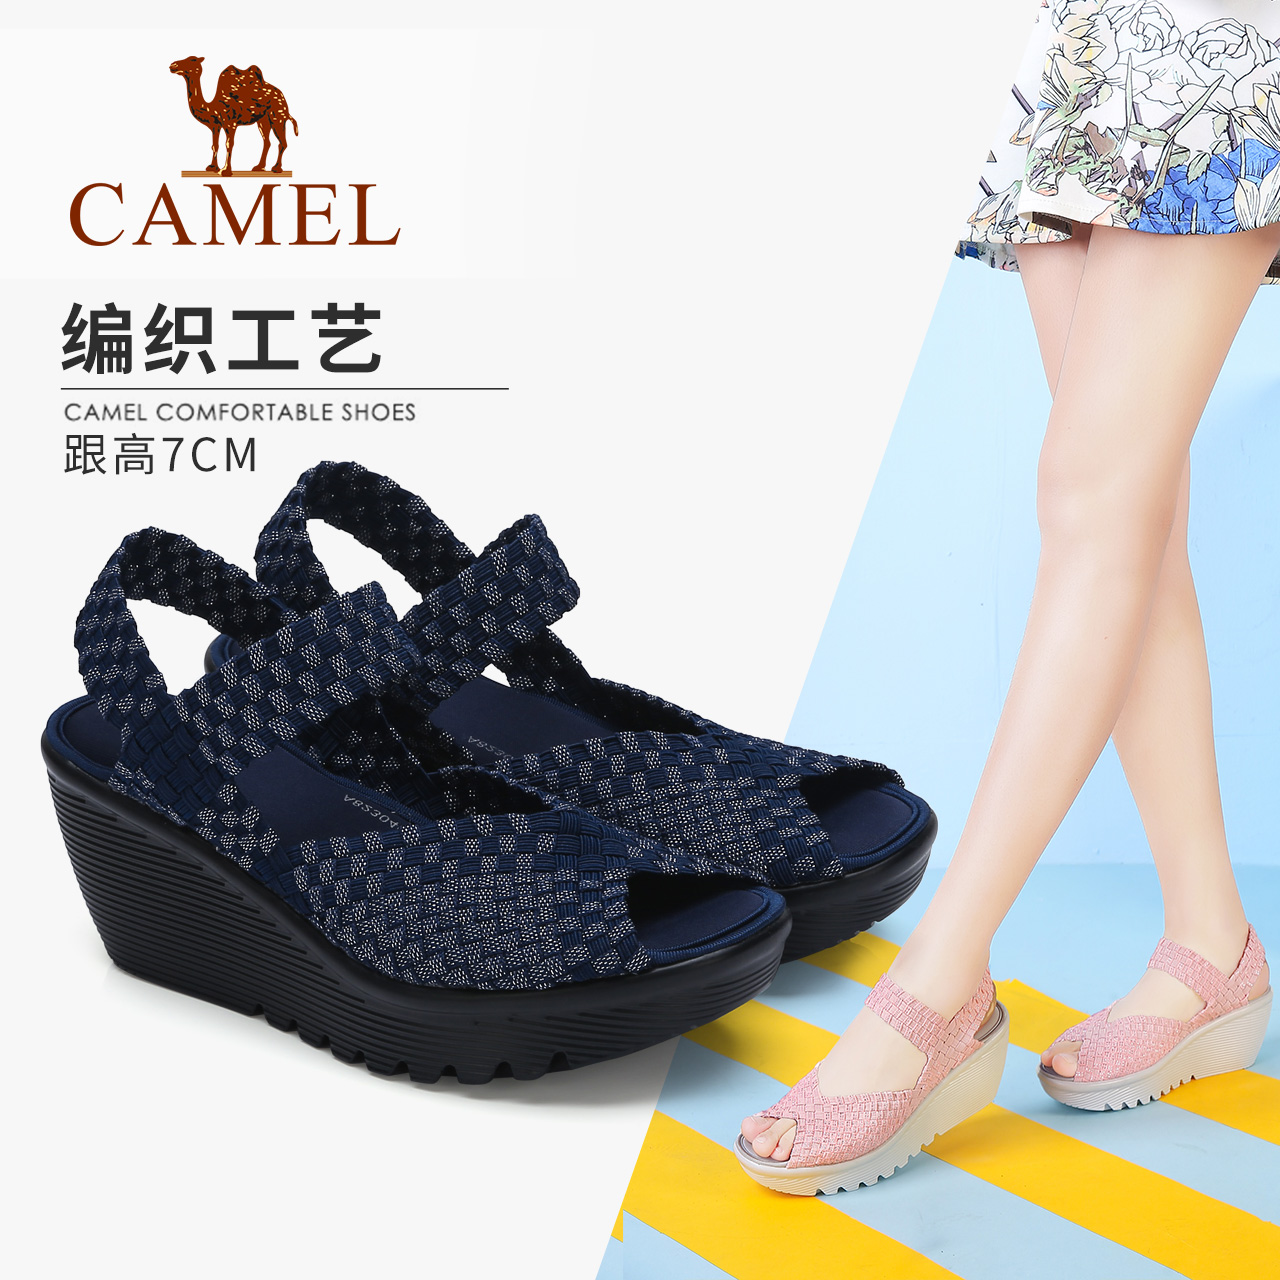 Camel women's shoes 2018 summer new fish mouth sandals thick bottom woven high heels fashion women's wedges platform shoes